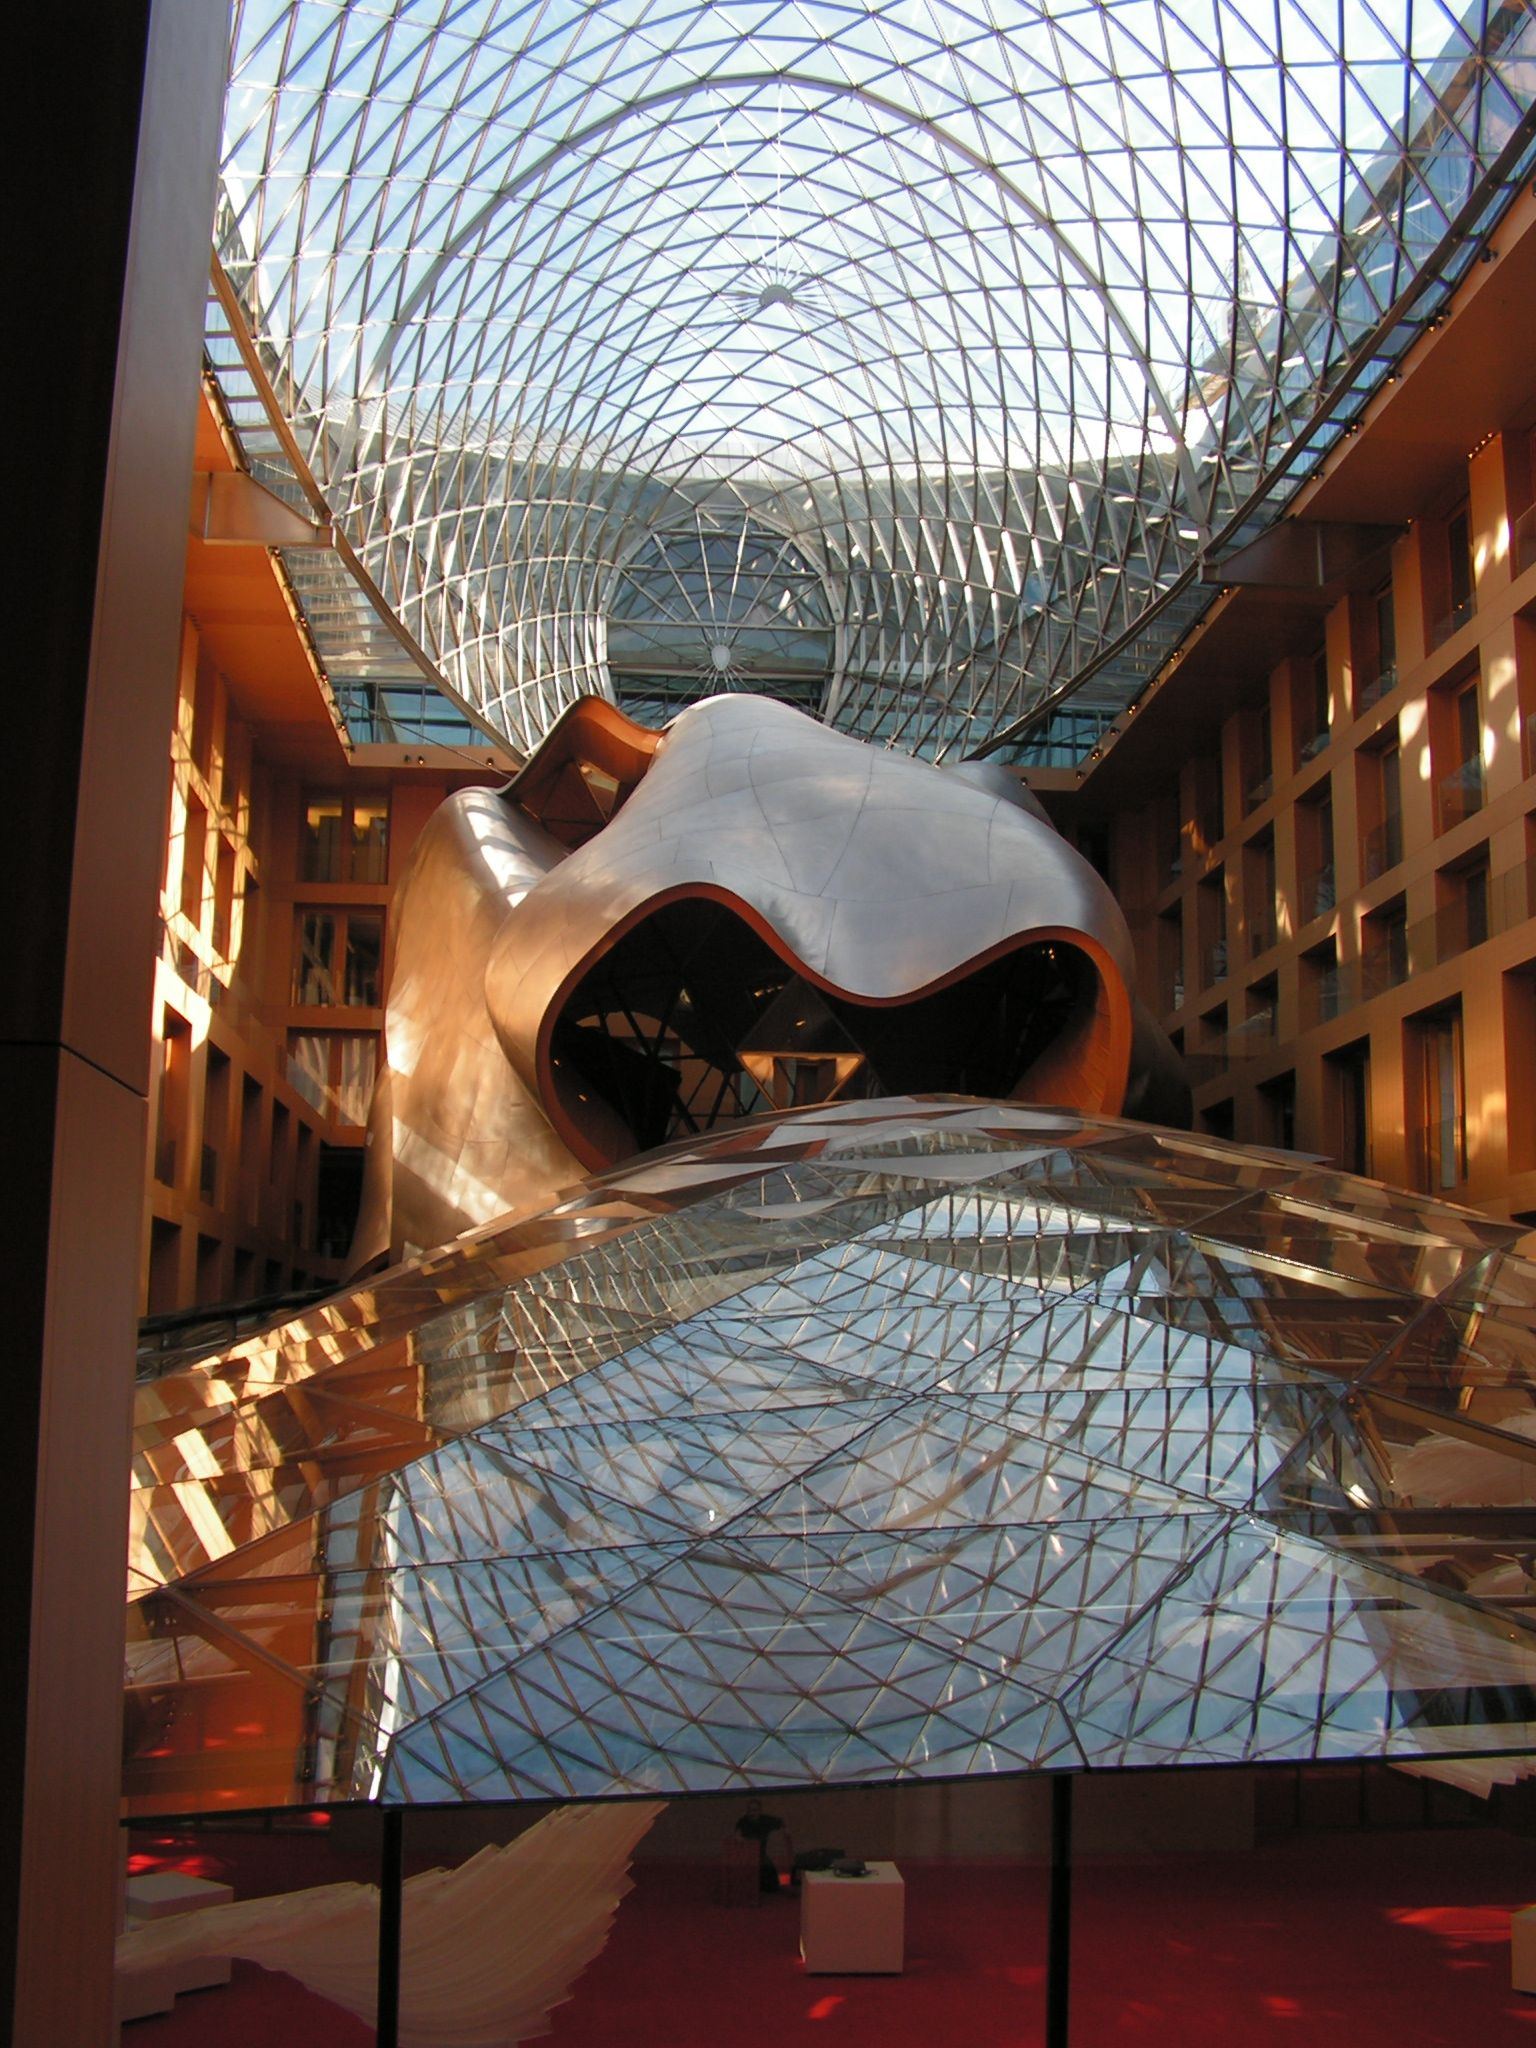 Dz Bank Frank Gehry Architect Gehry Architecture Parametric Architecture Architecture Building